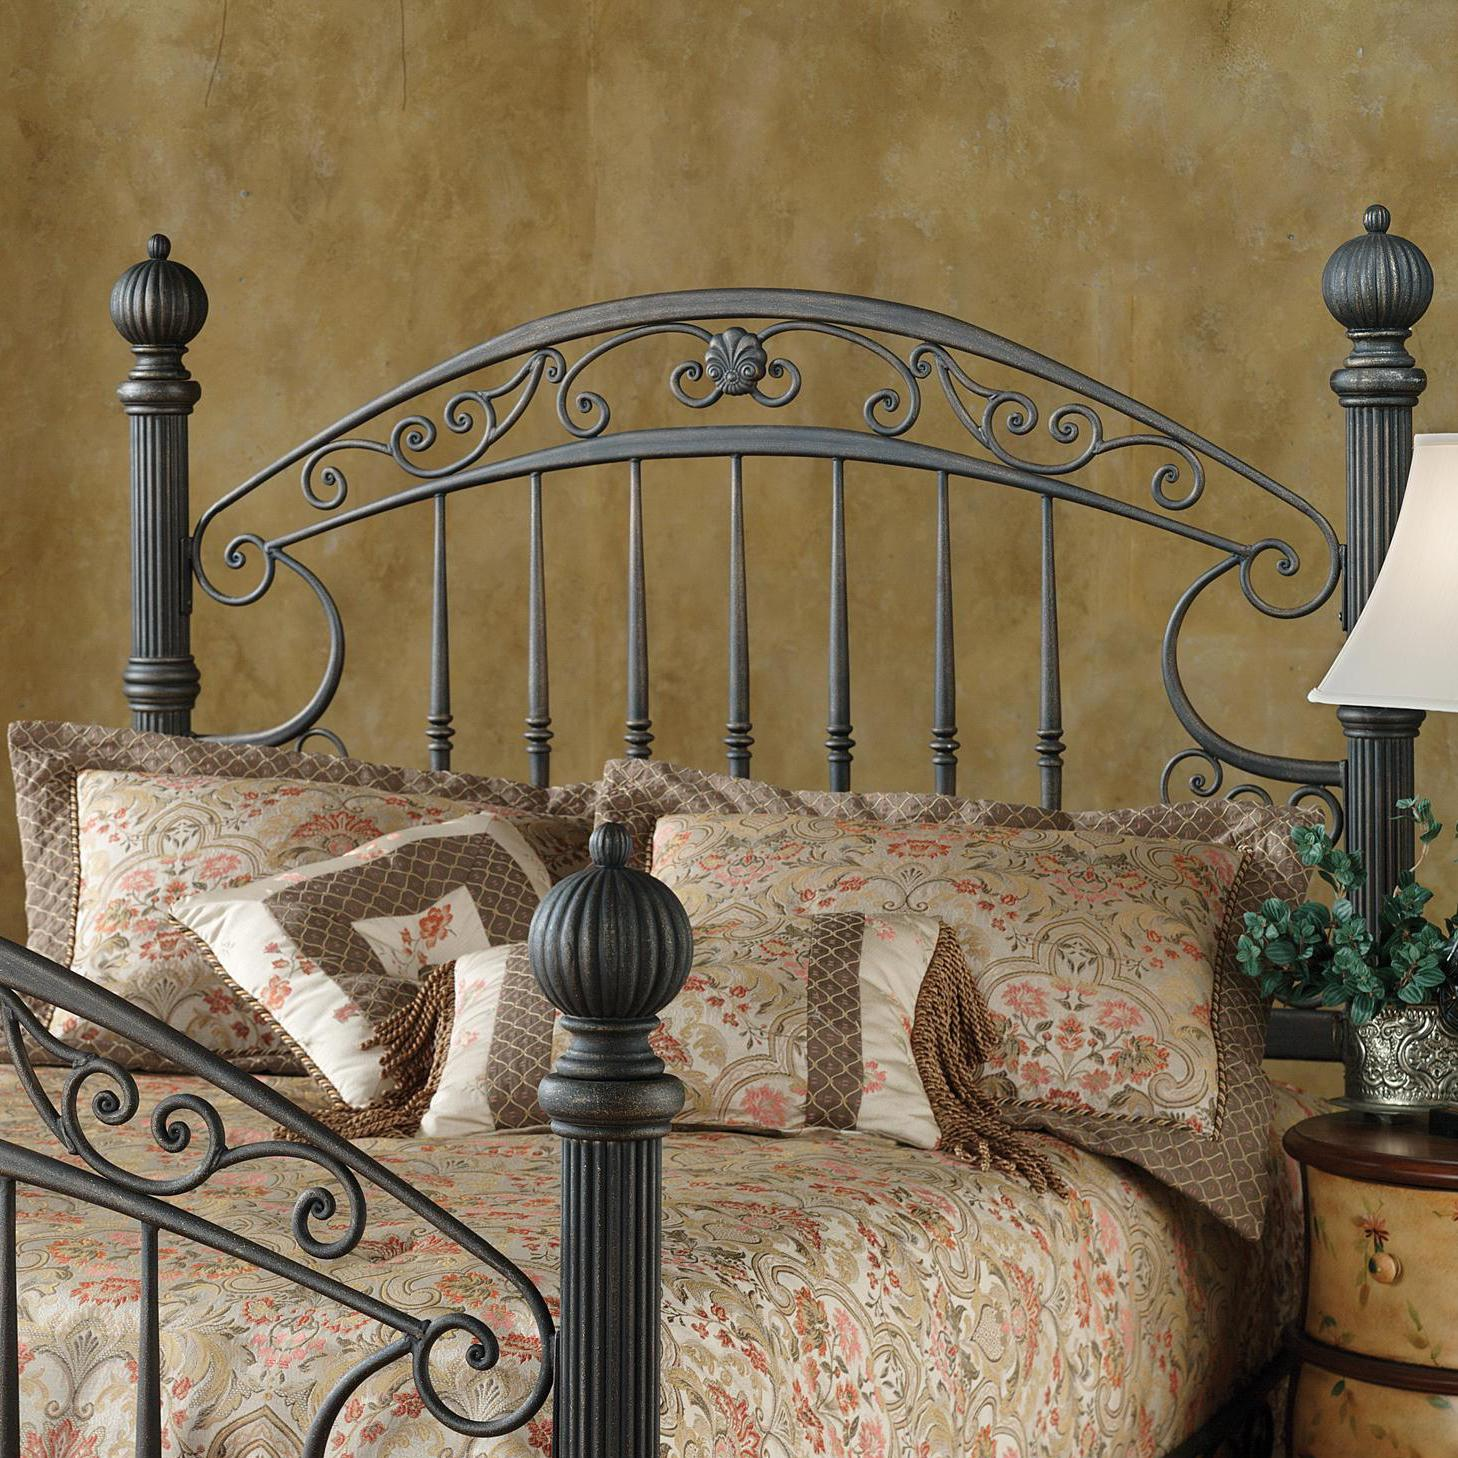 Hillsdale Metal Beds Queen Chesapeake Headboard Grill with Frame - Item Number: 1335HQR